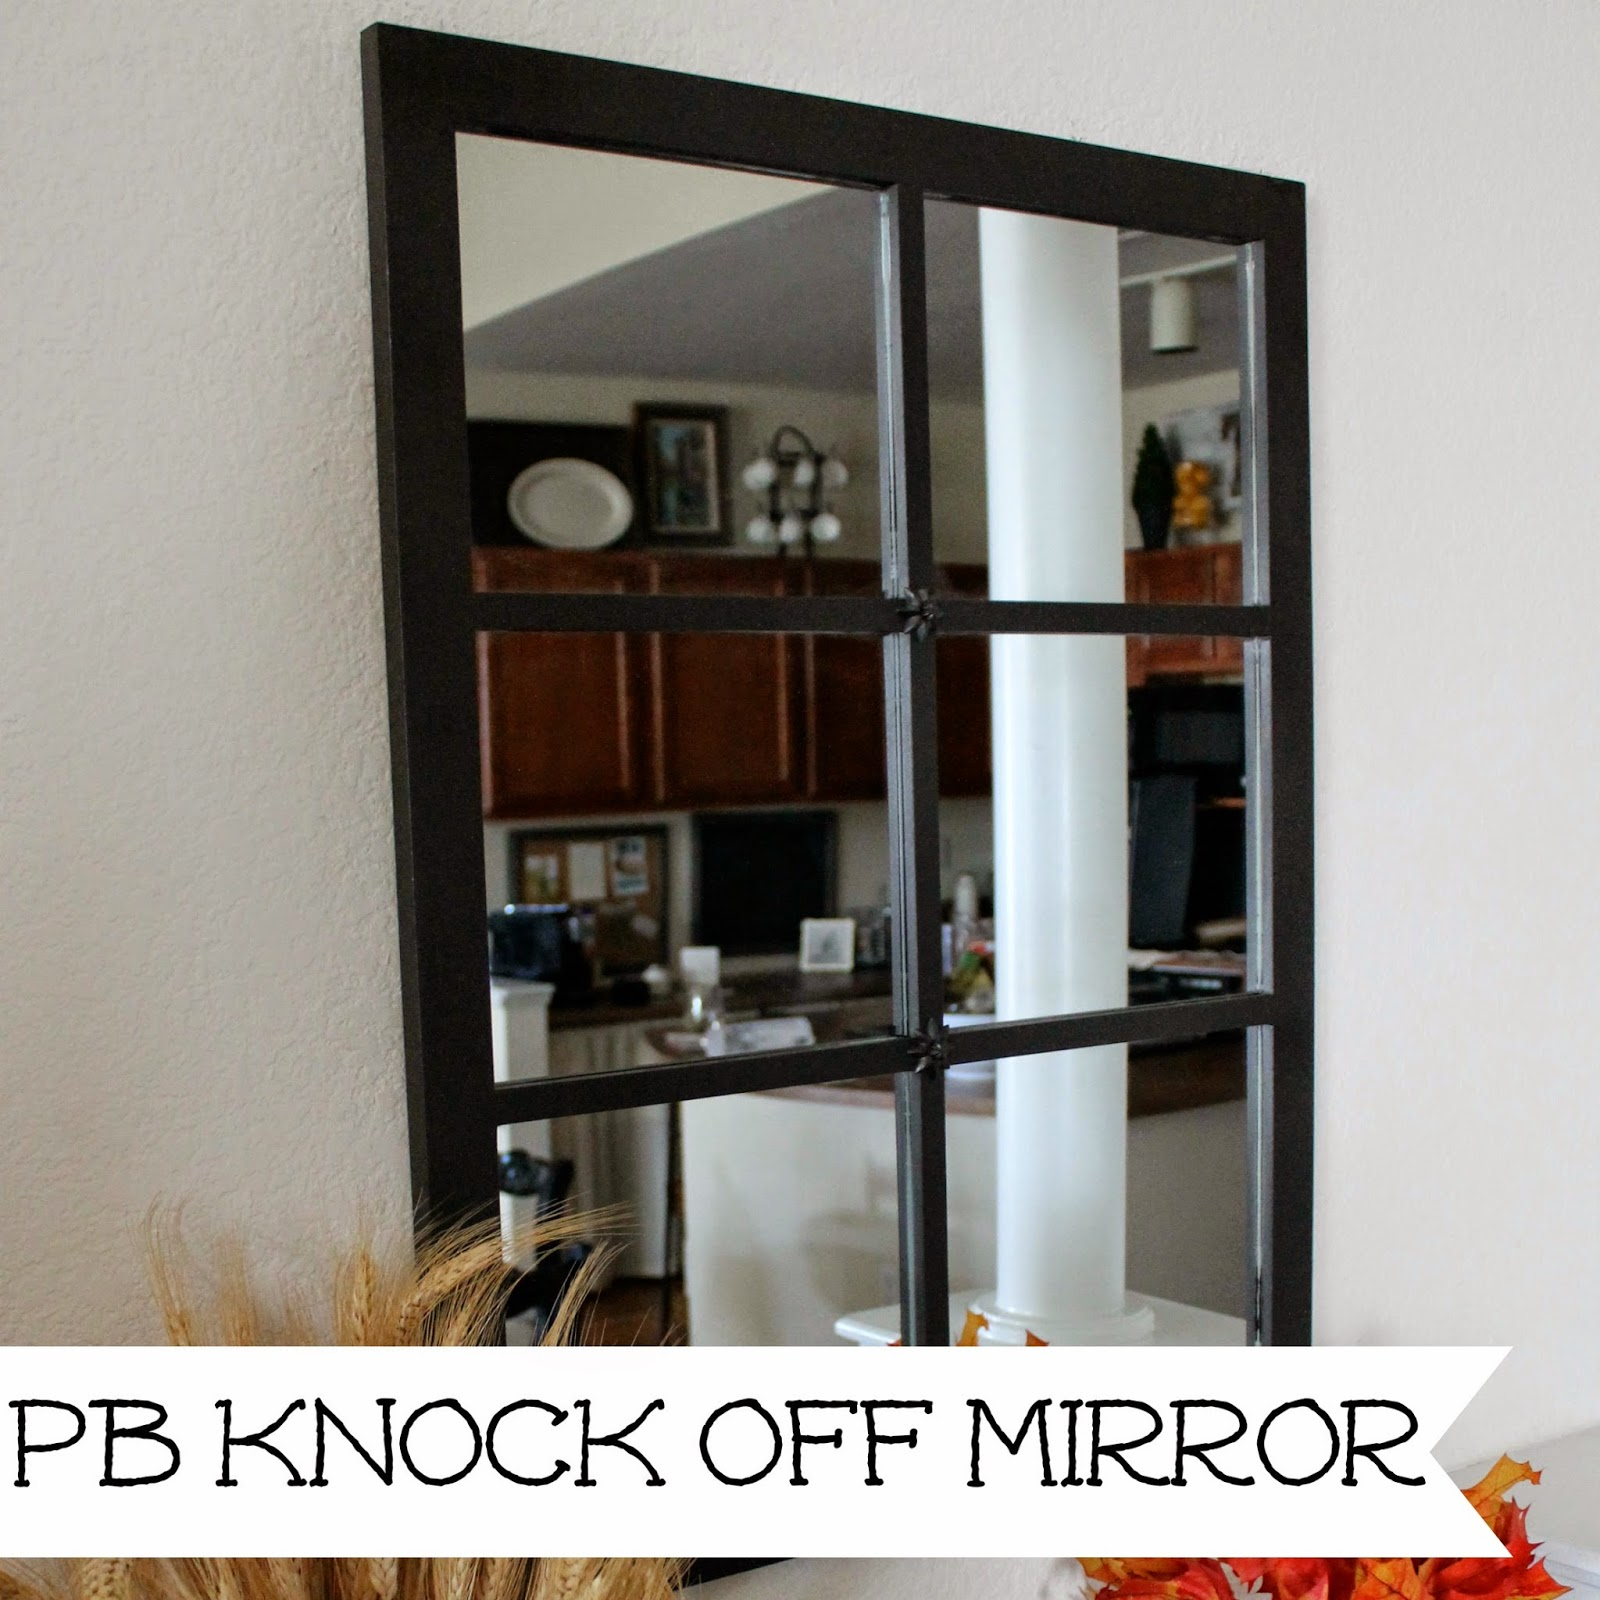 http://wonderfullymadebyleslie.blogspot.com/2013/10/knock-off-mirror.html